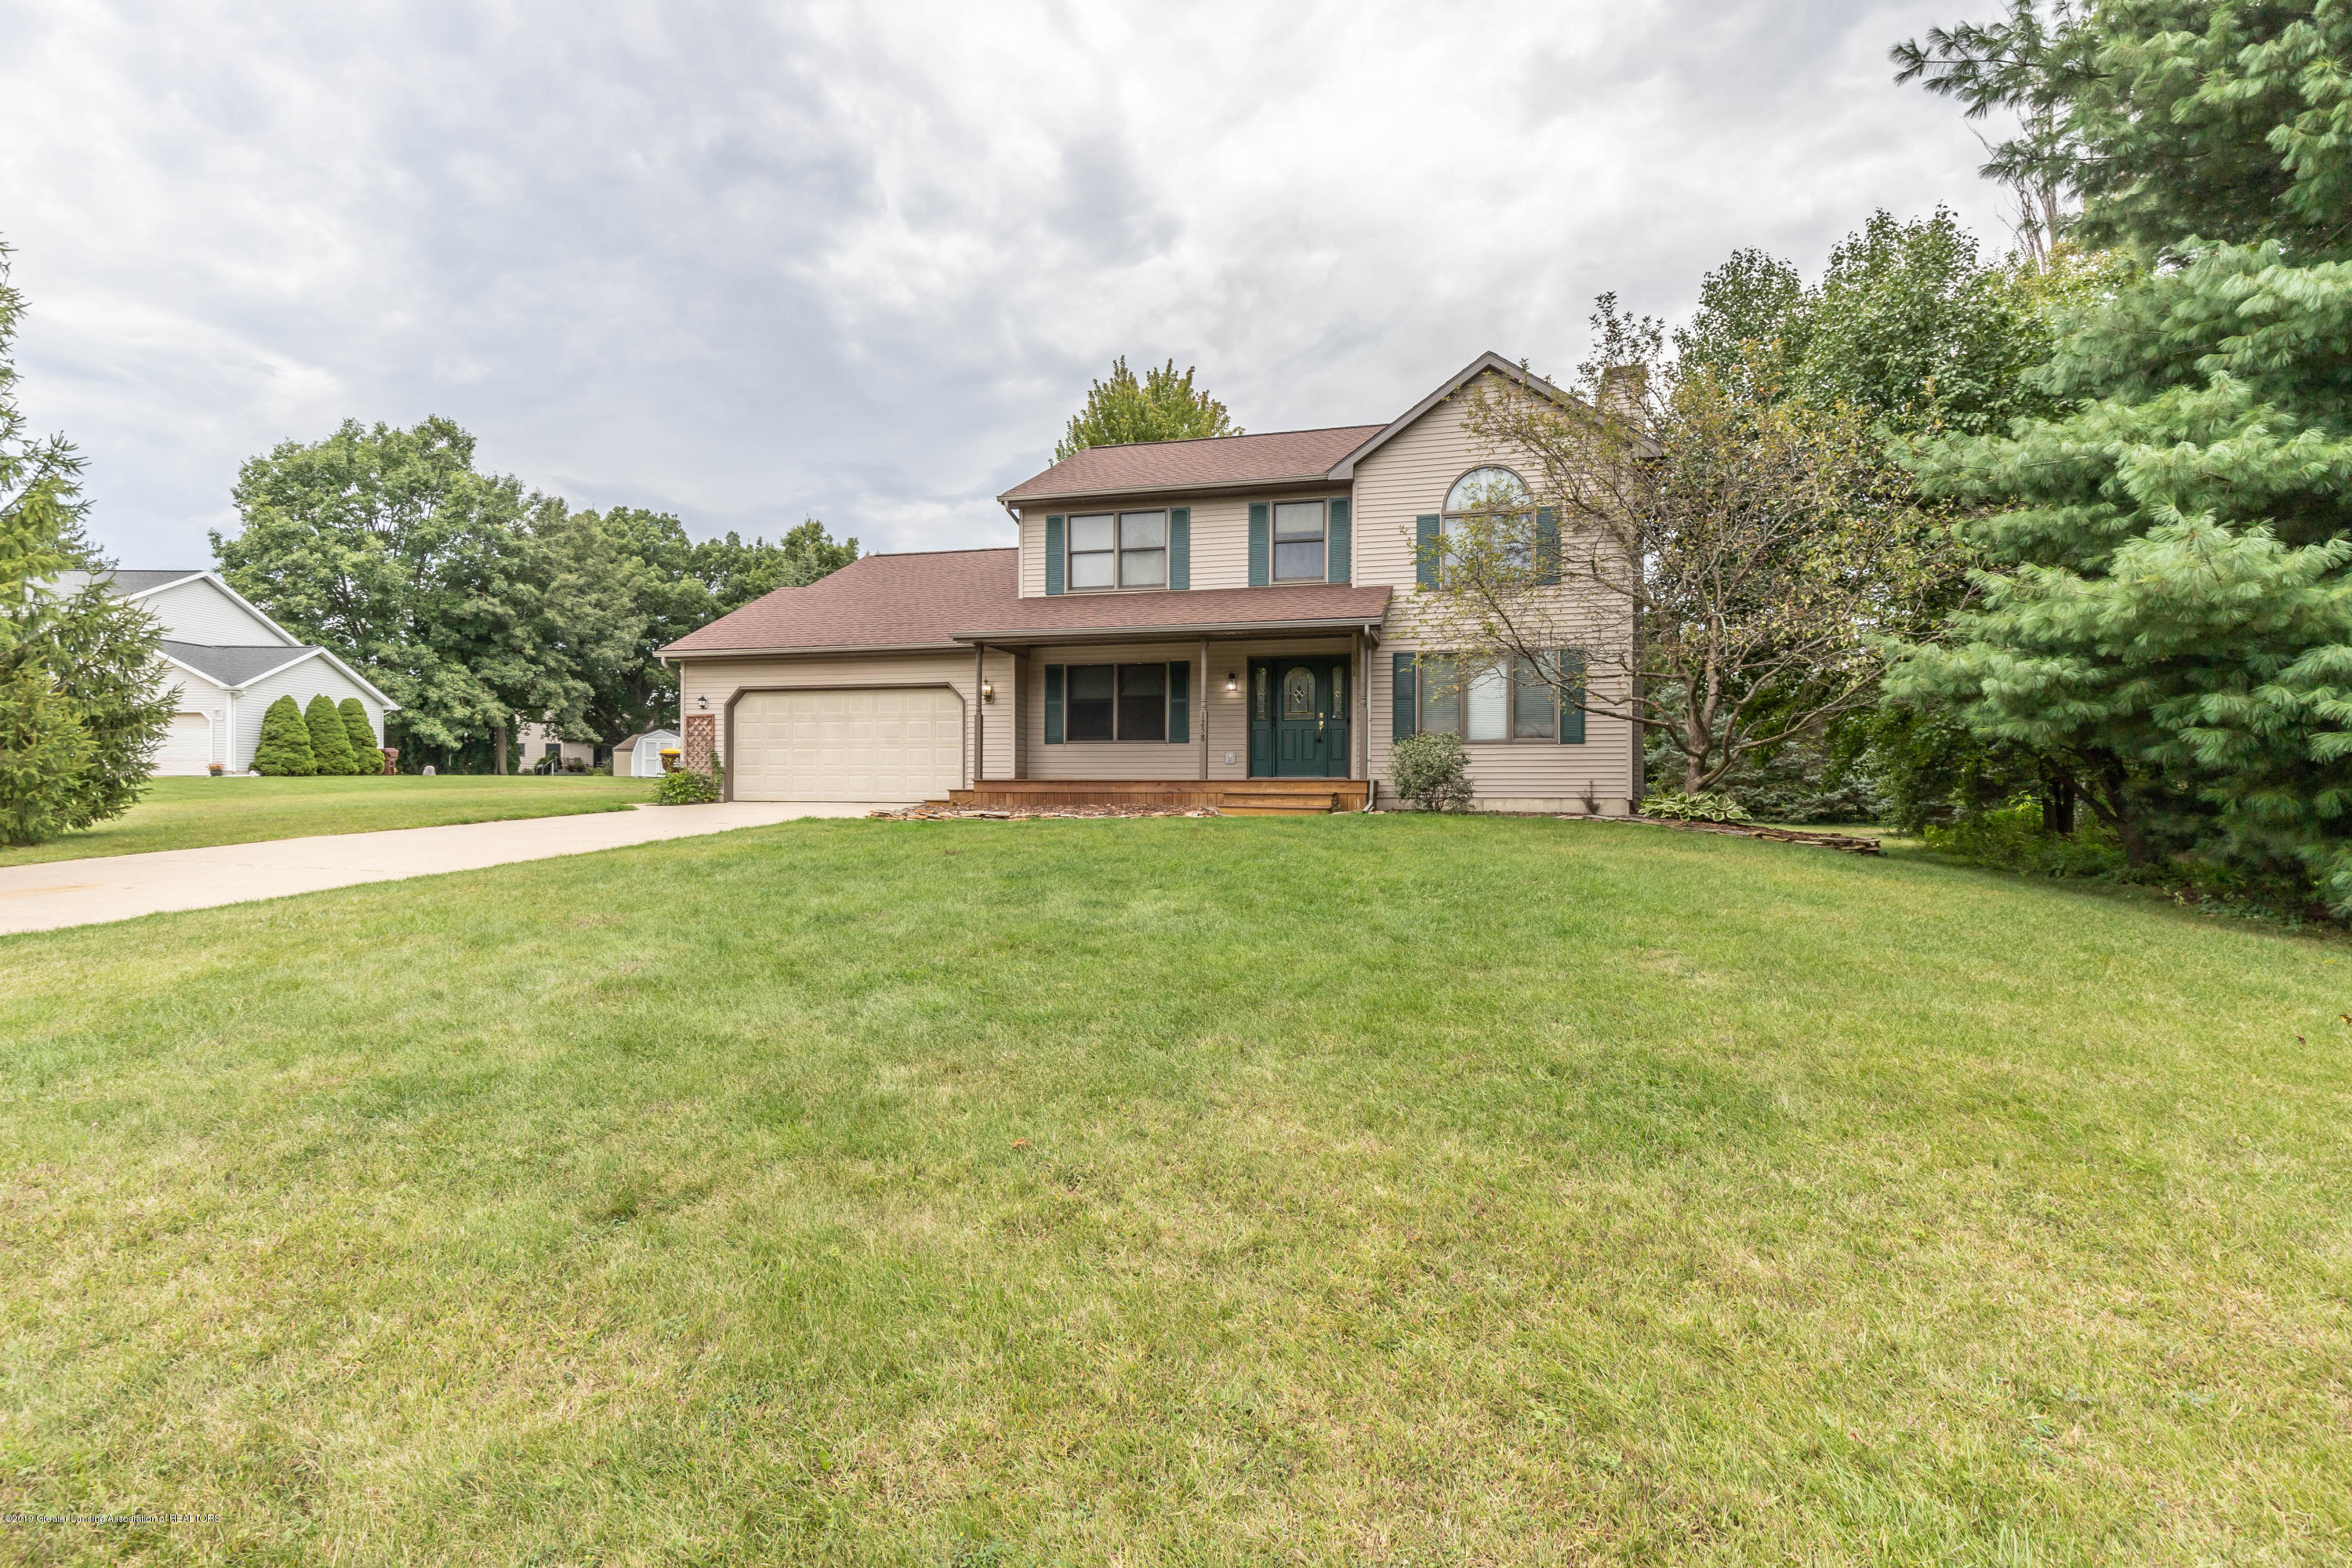 1258 Castlewood Cir - candlewoodfront (1 of 1) - 30